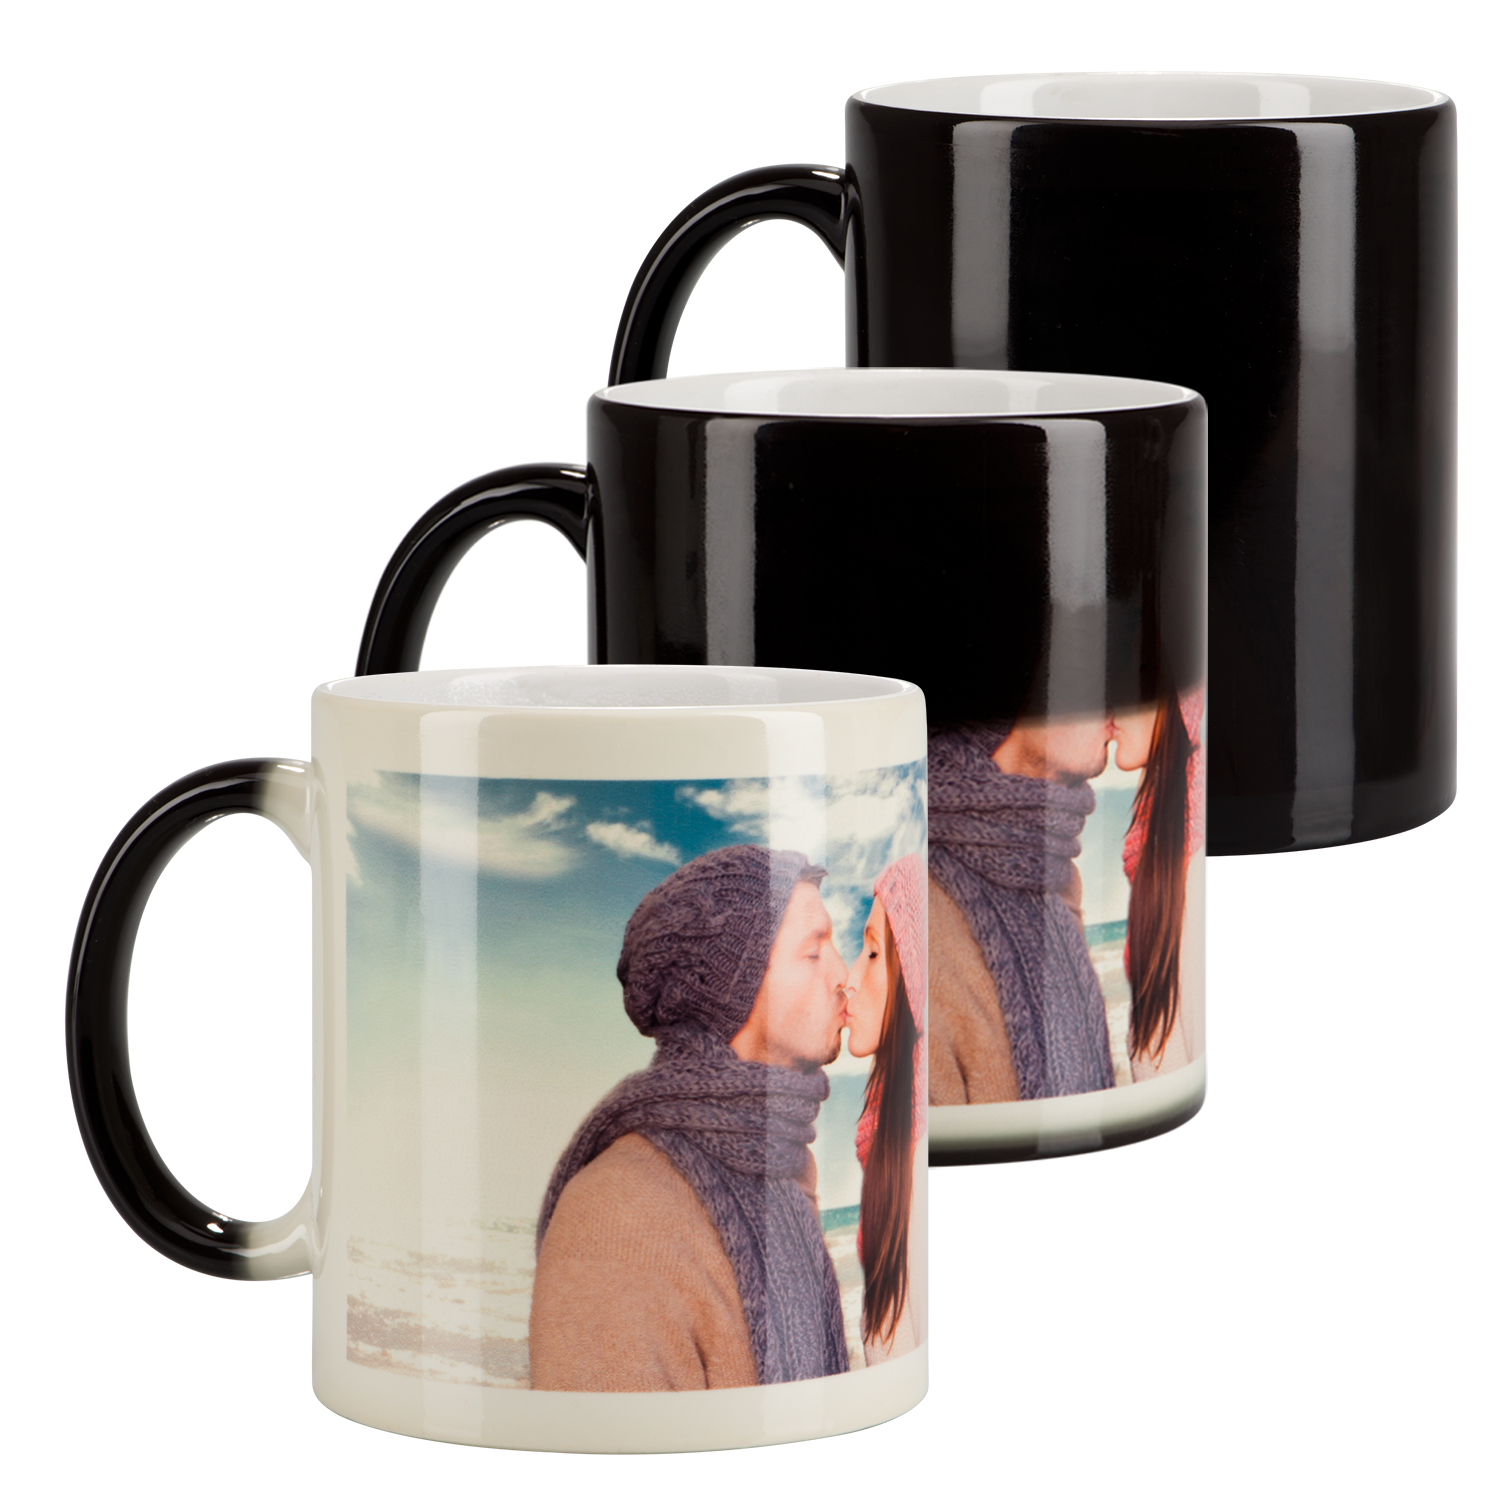 La tasse magique for Photo idee cadeau